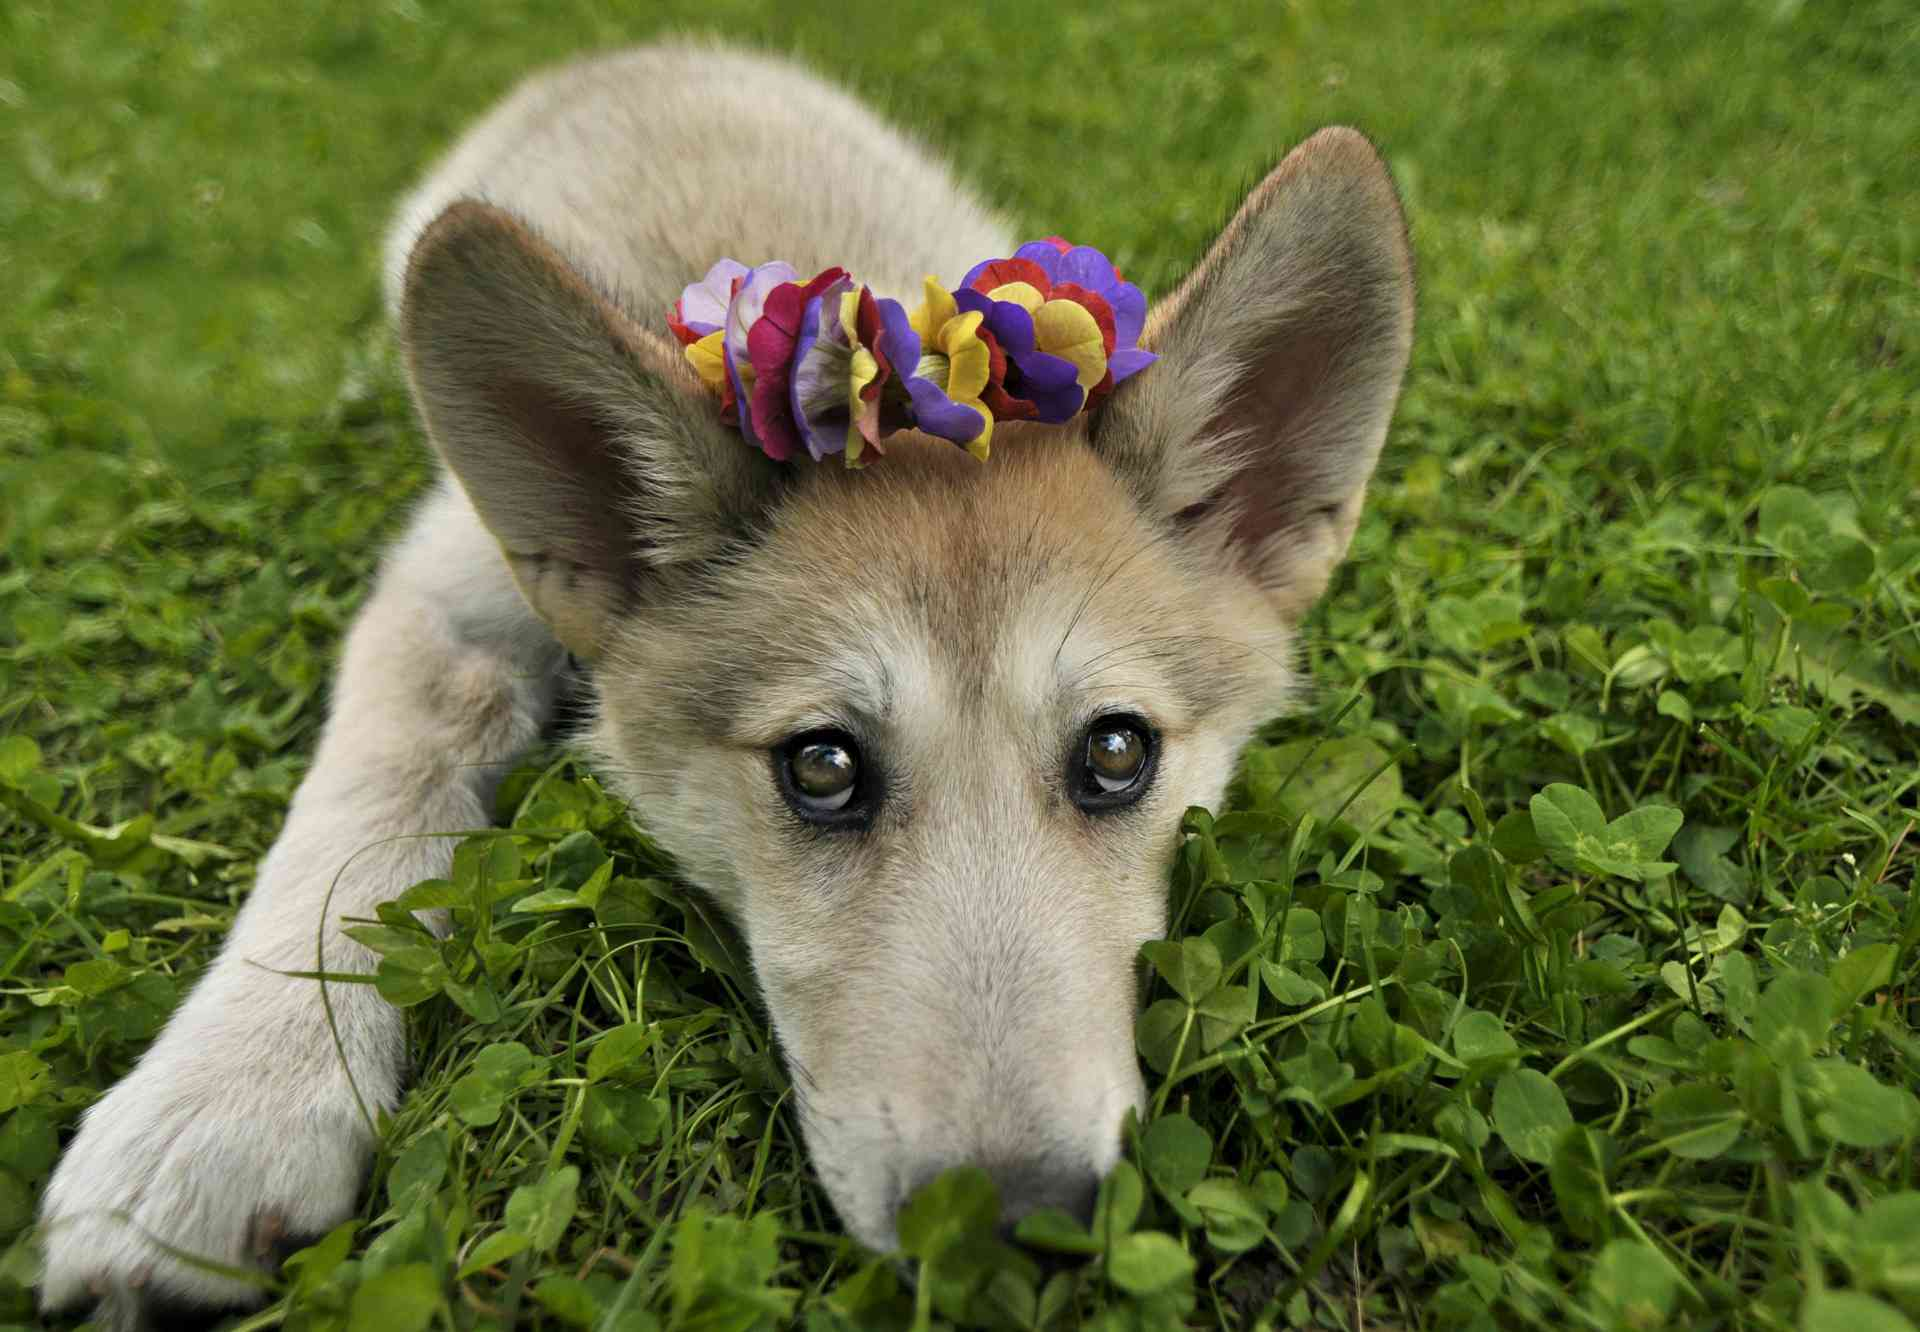 A wolf dog puppy with flowers on her head.